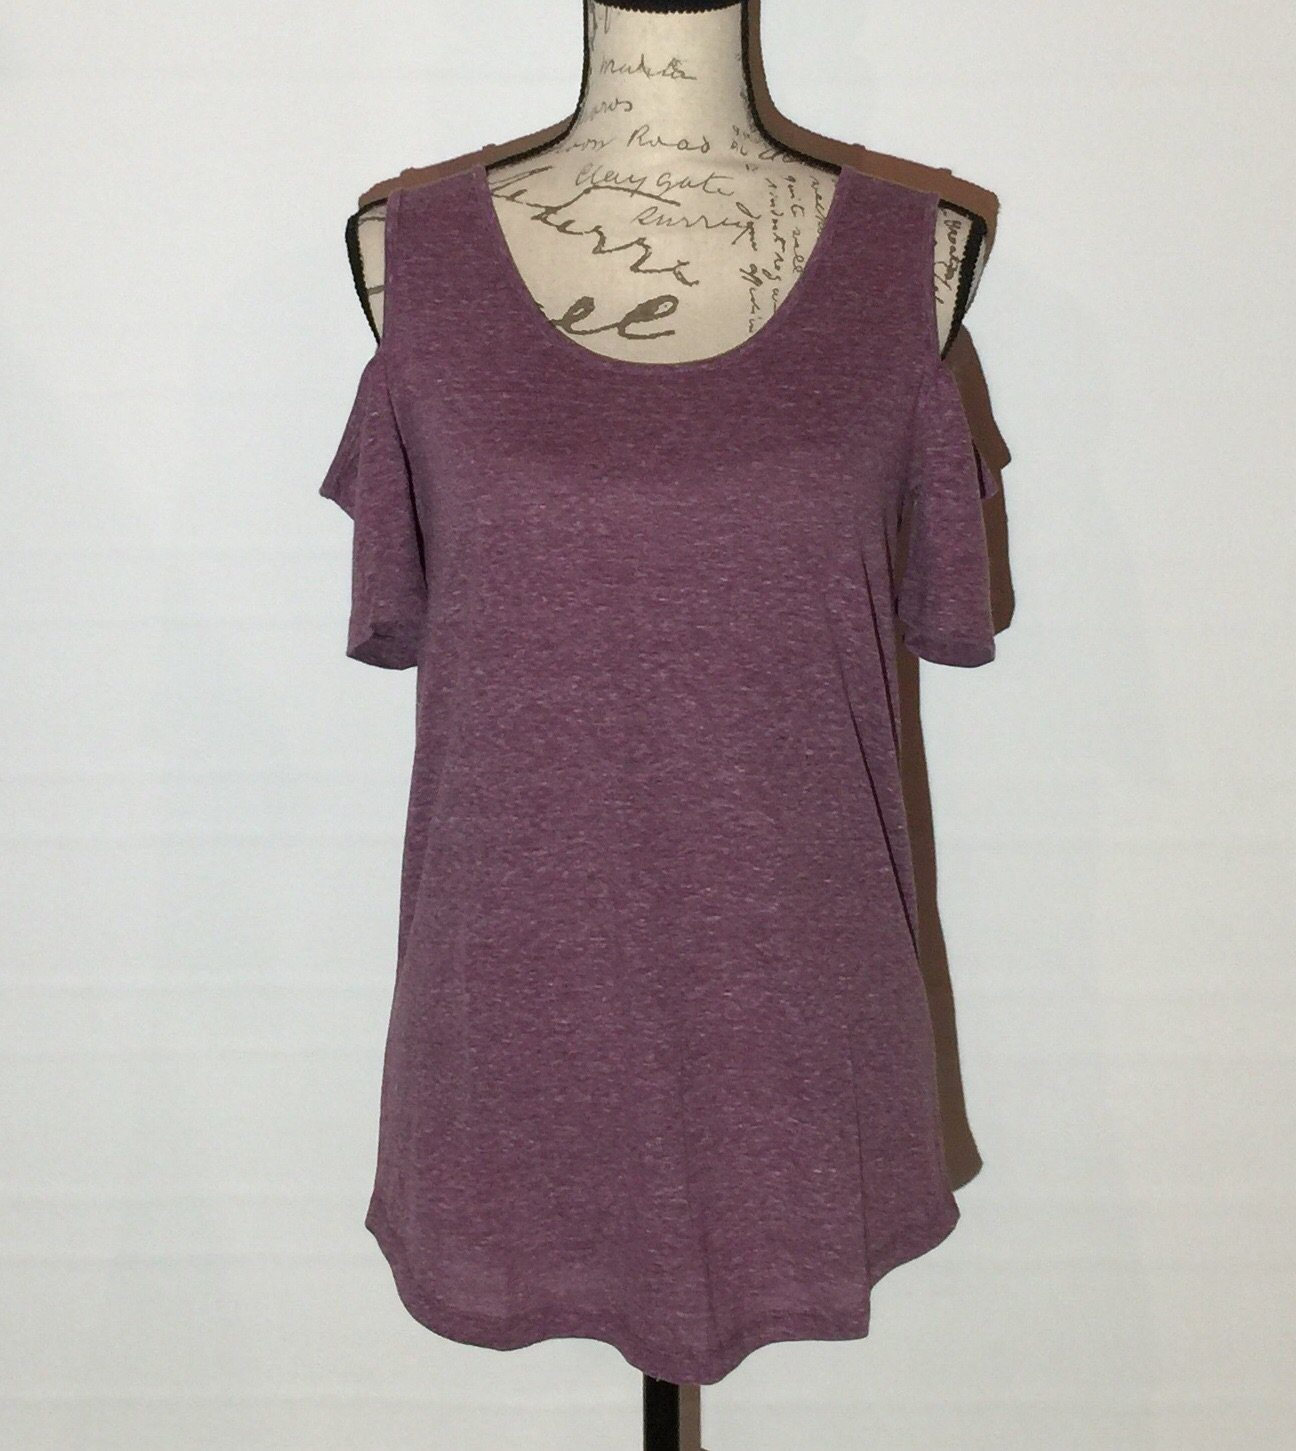 50% Off Women's Cold Shoulder Summer Top Purple: S/M/L Tops MomMe and More